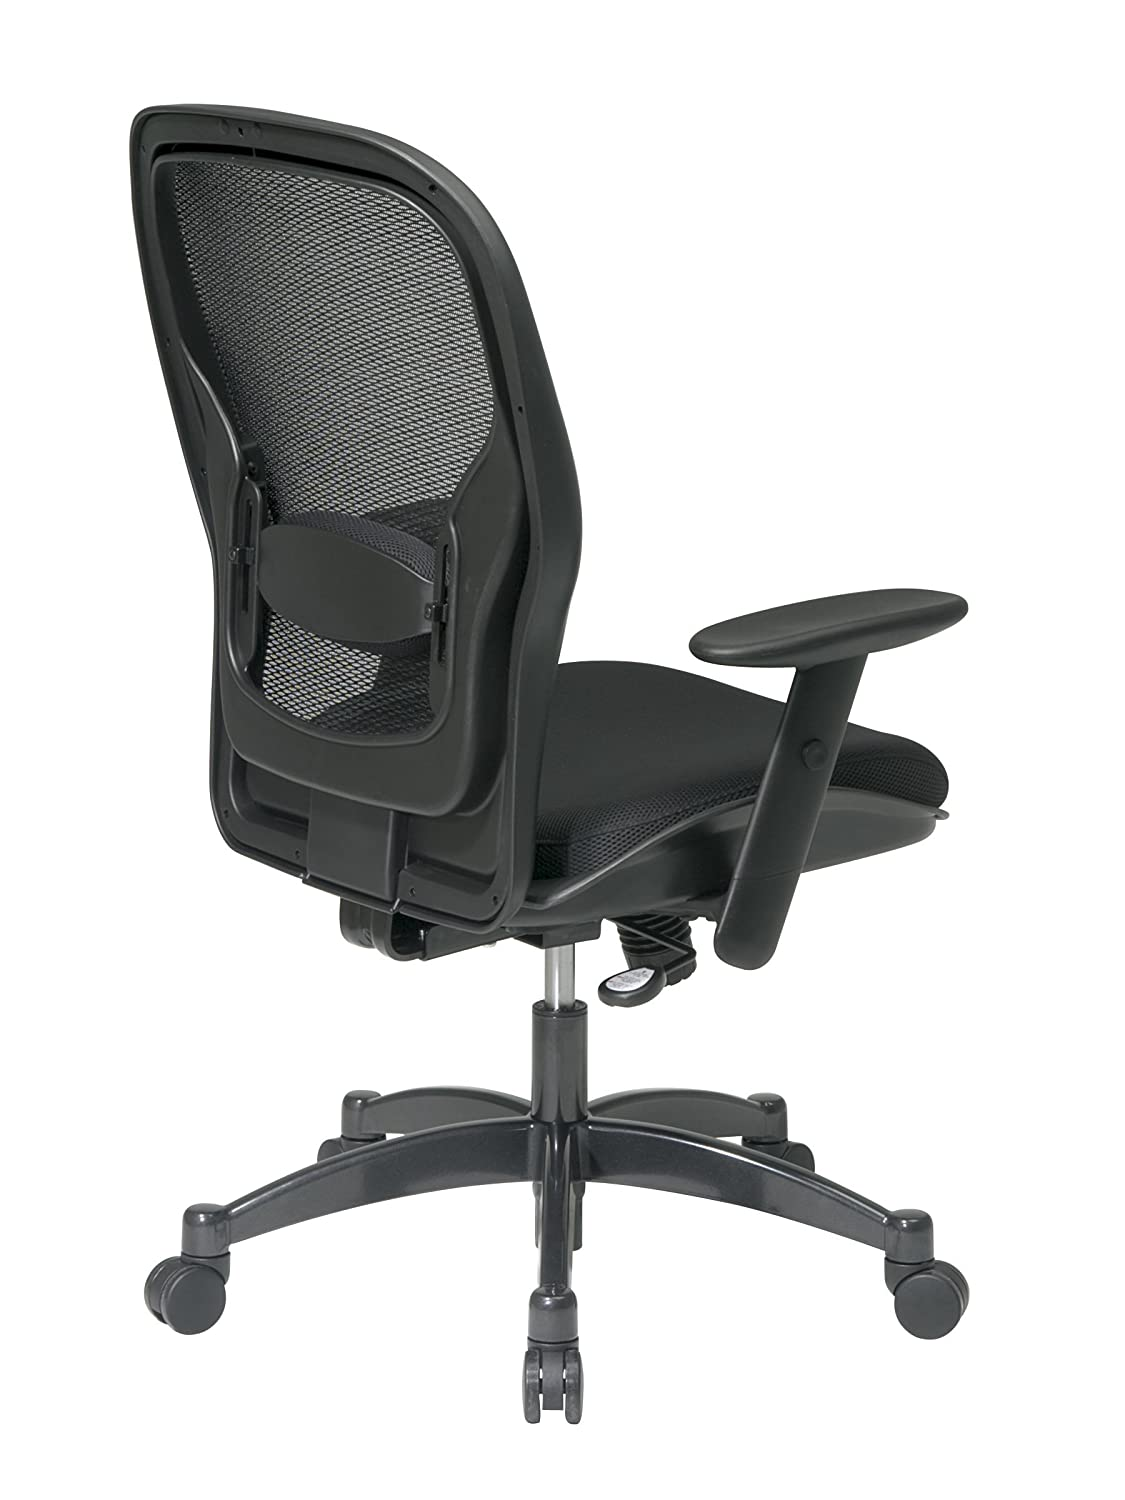 Office chair back view - Amazon Com Space Seating Breathable Mesh Black Back And Padded Mesh Seat 2 To 1 Synchro Tilt Control Adjustable Arms And Lumbar Support With Gunmetal